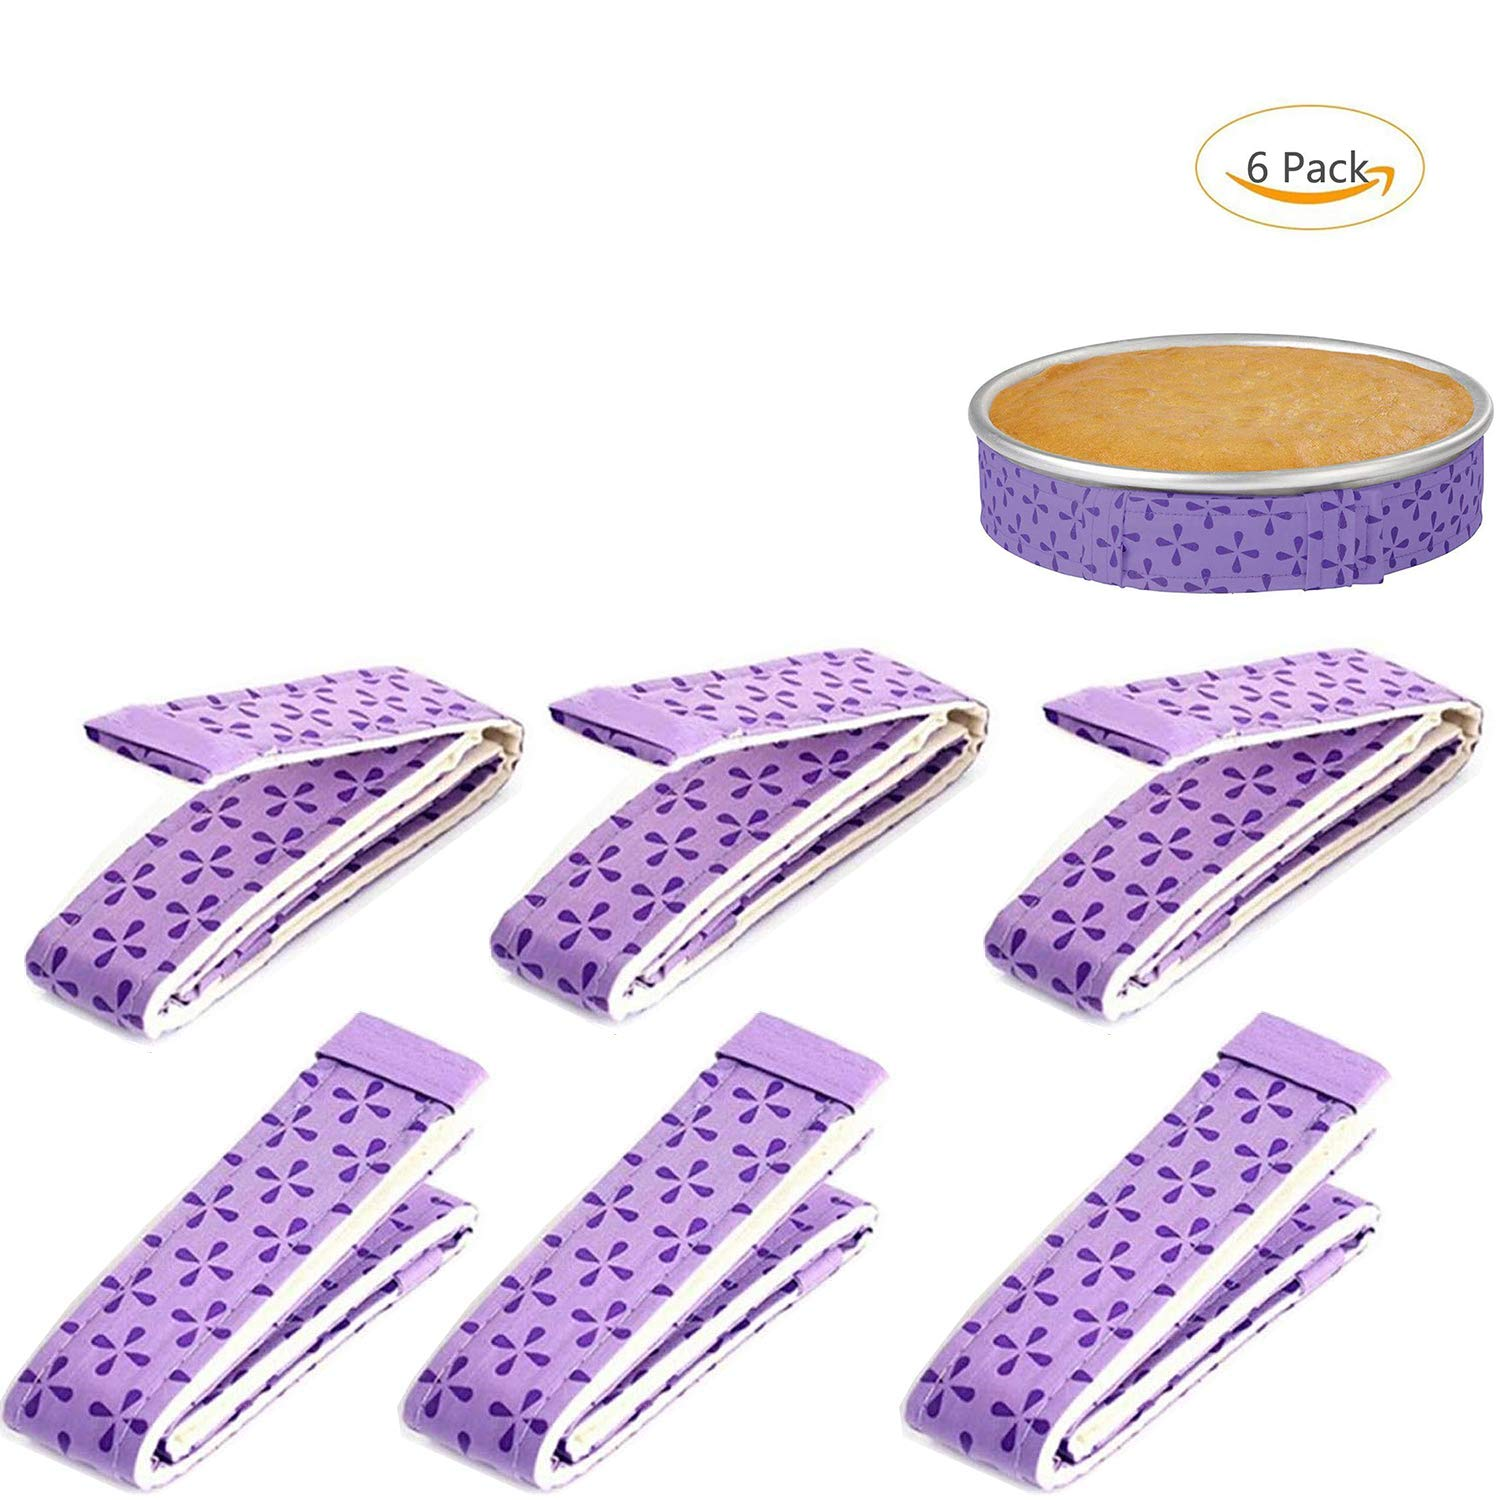 6-Piece Bake Even Strip,Cake Pan Strips,Super Absorbent Thick Cotton,Cake Strips for Baking,Cake Pan Strips